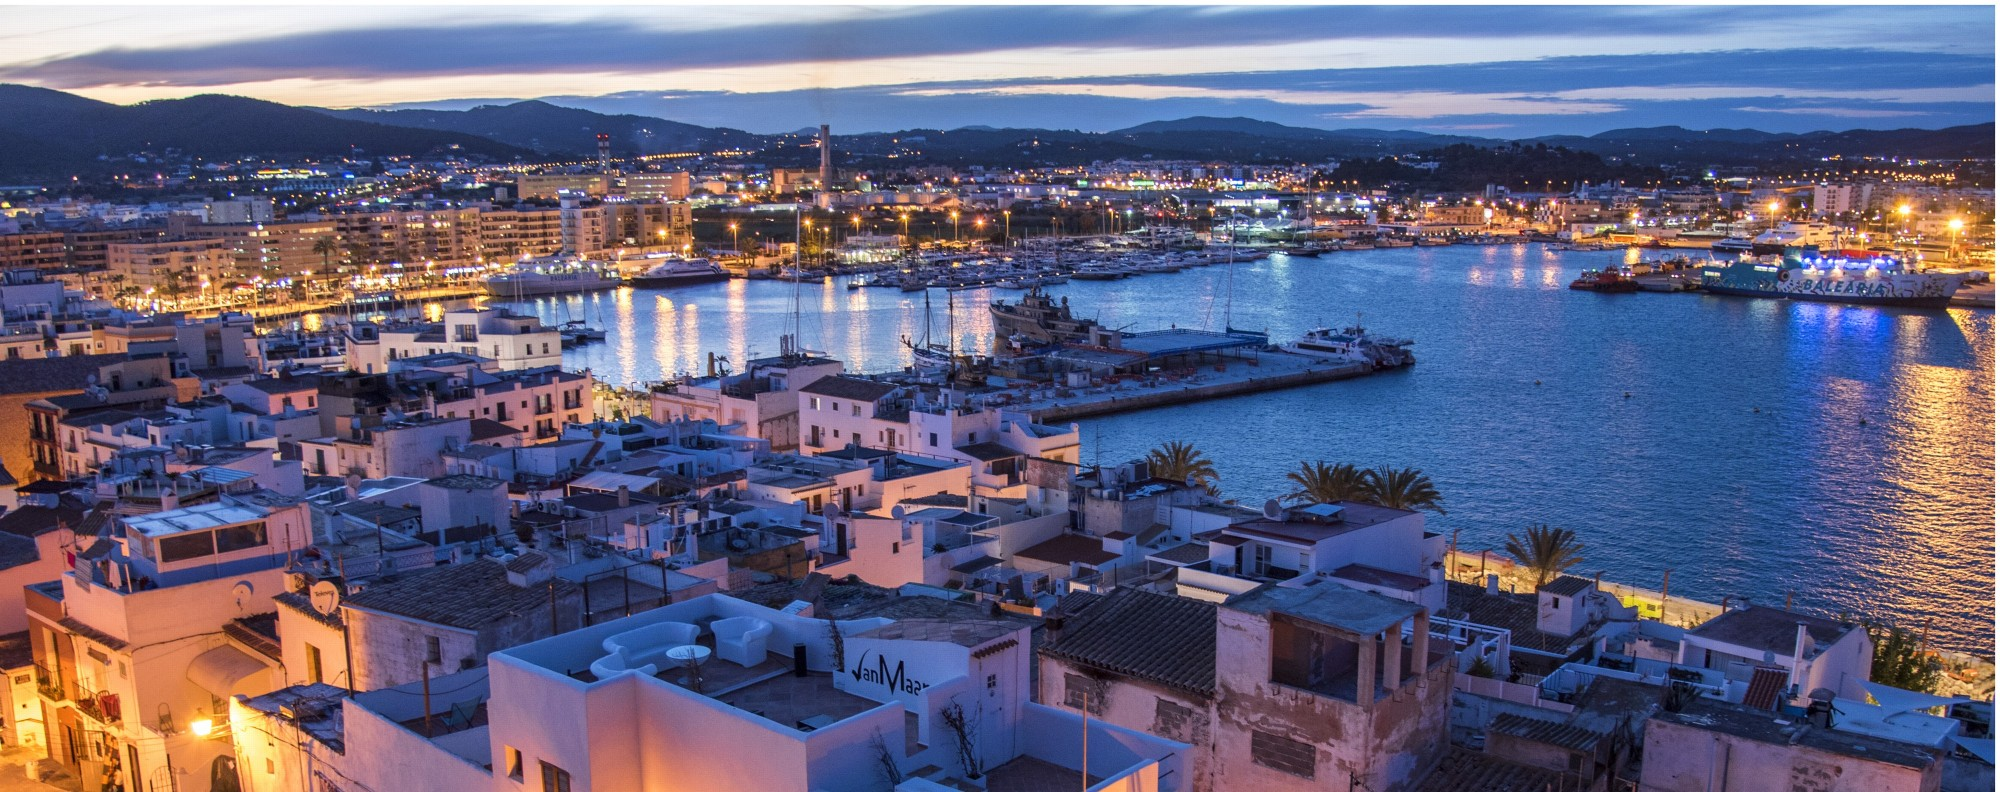 Ibiza Town as seen from the castle. Picture: Tim Pile